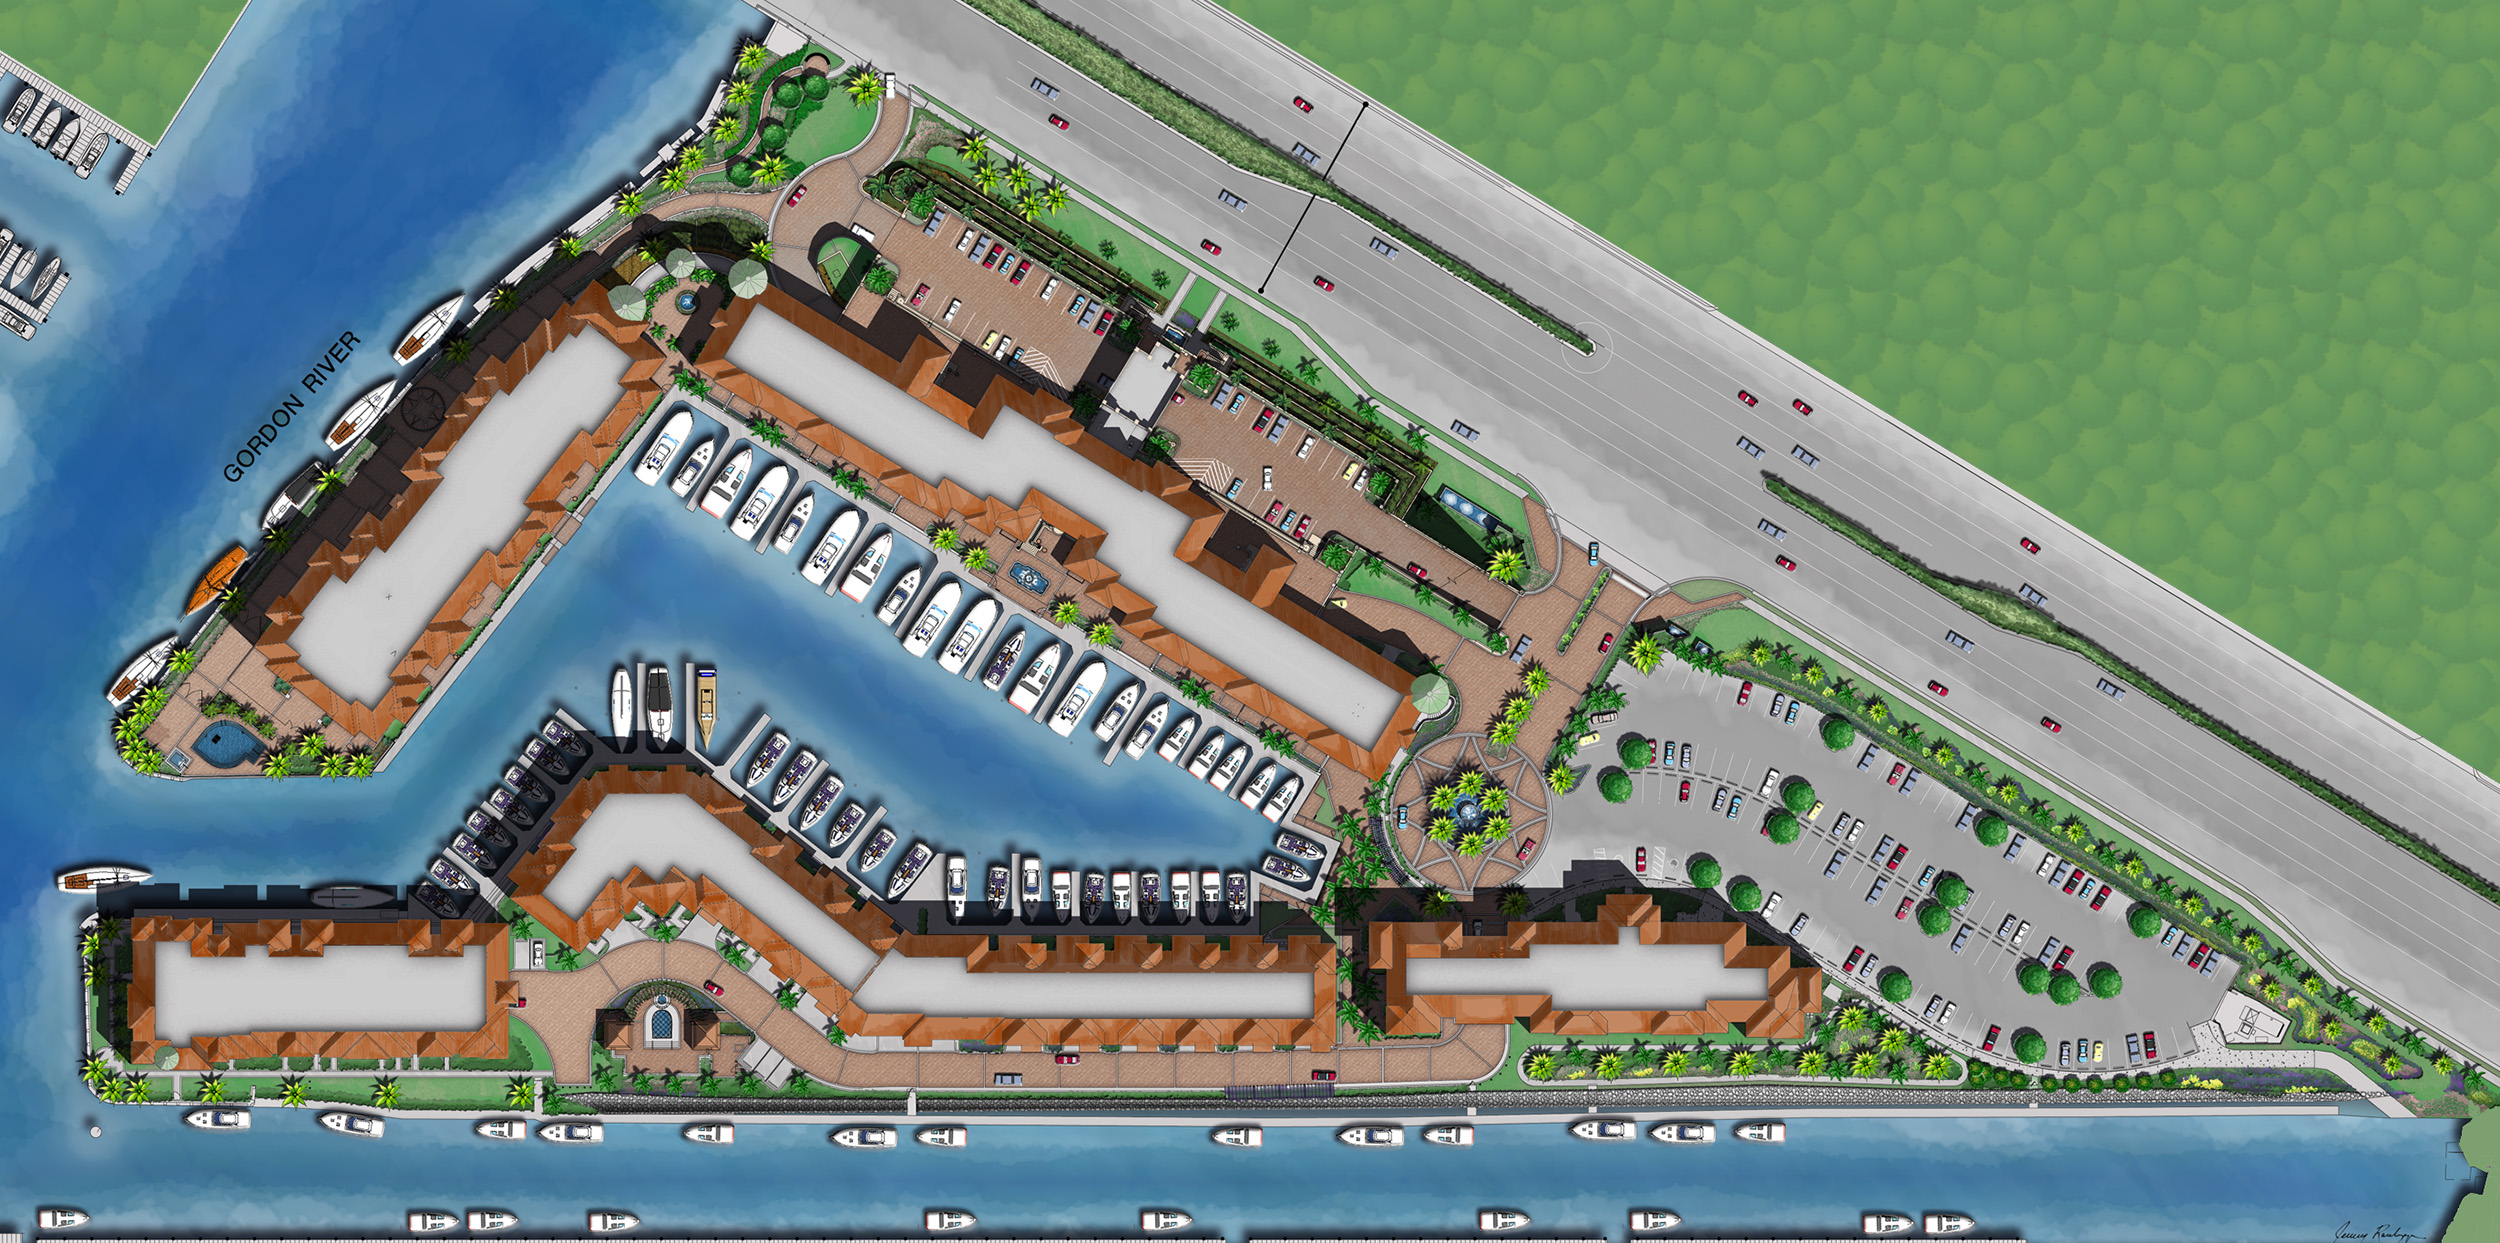 Naples Bay Resort Site Plan.jpg